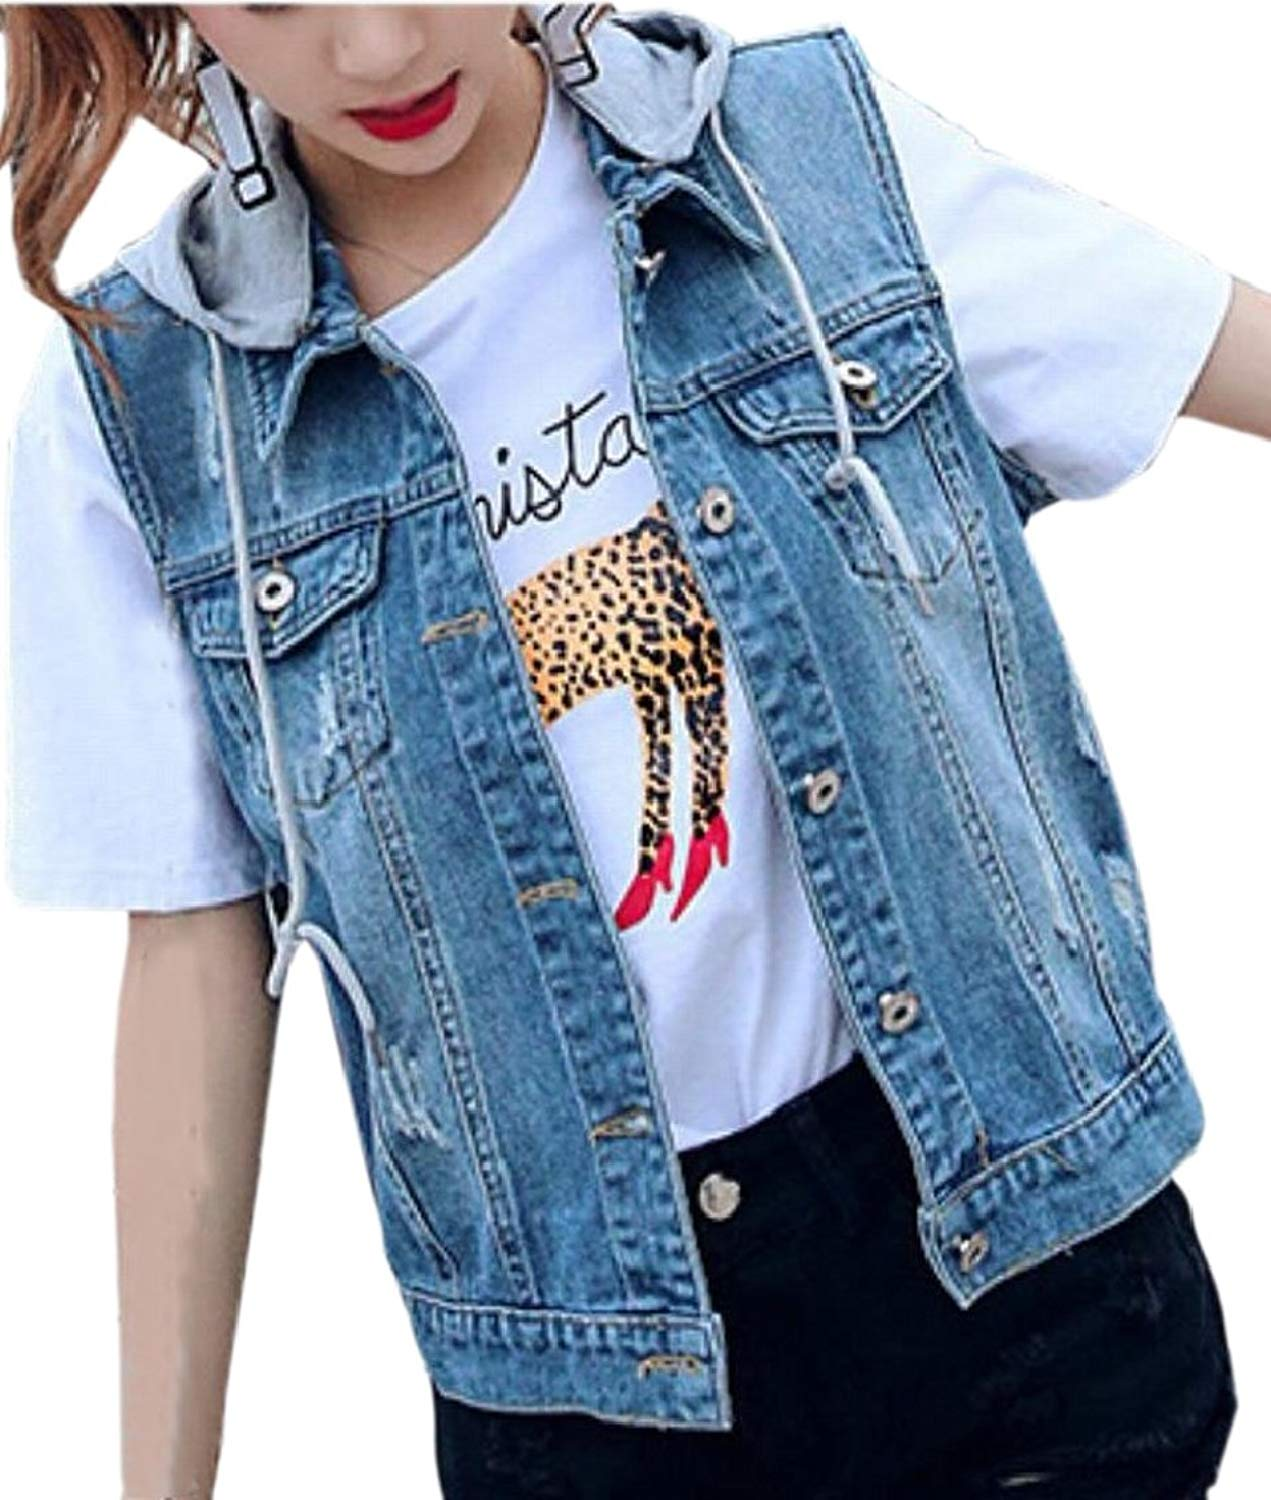 5c9e853a7d8f6 Get Quotations · Jaycargogo Womens Hooded Washed Denim Vest Sleeveless Jean  Jacket